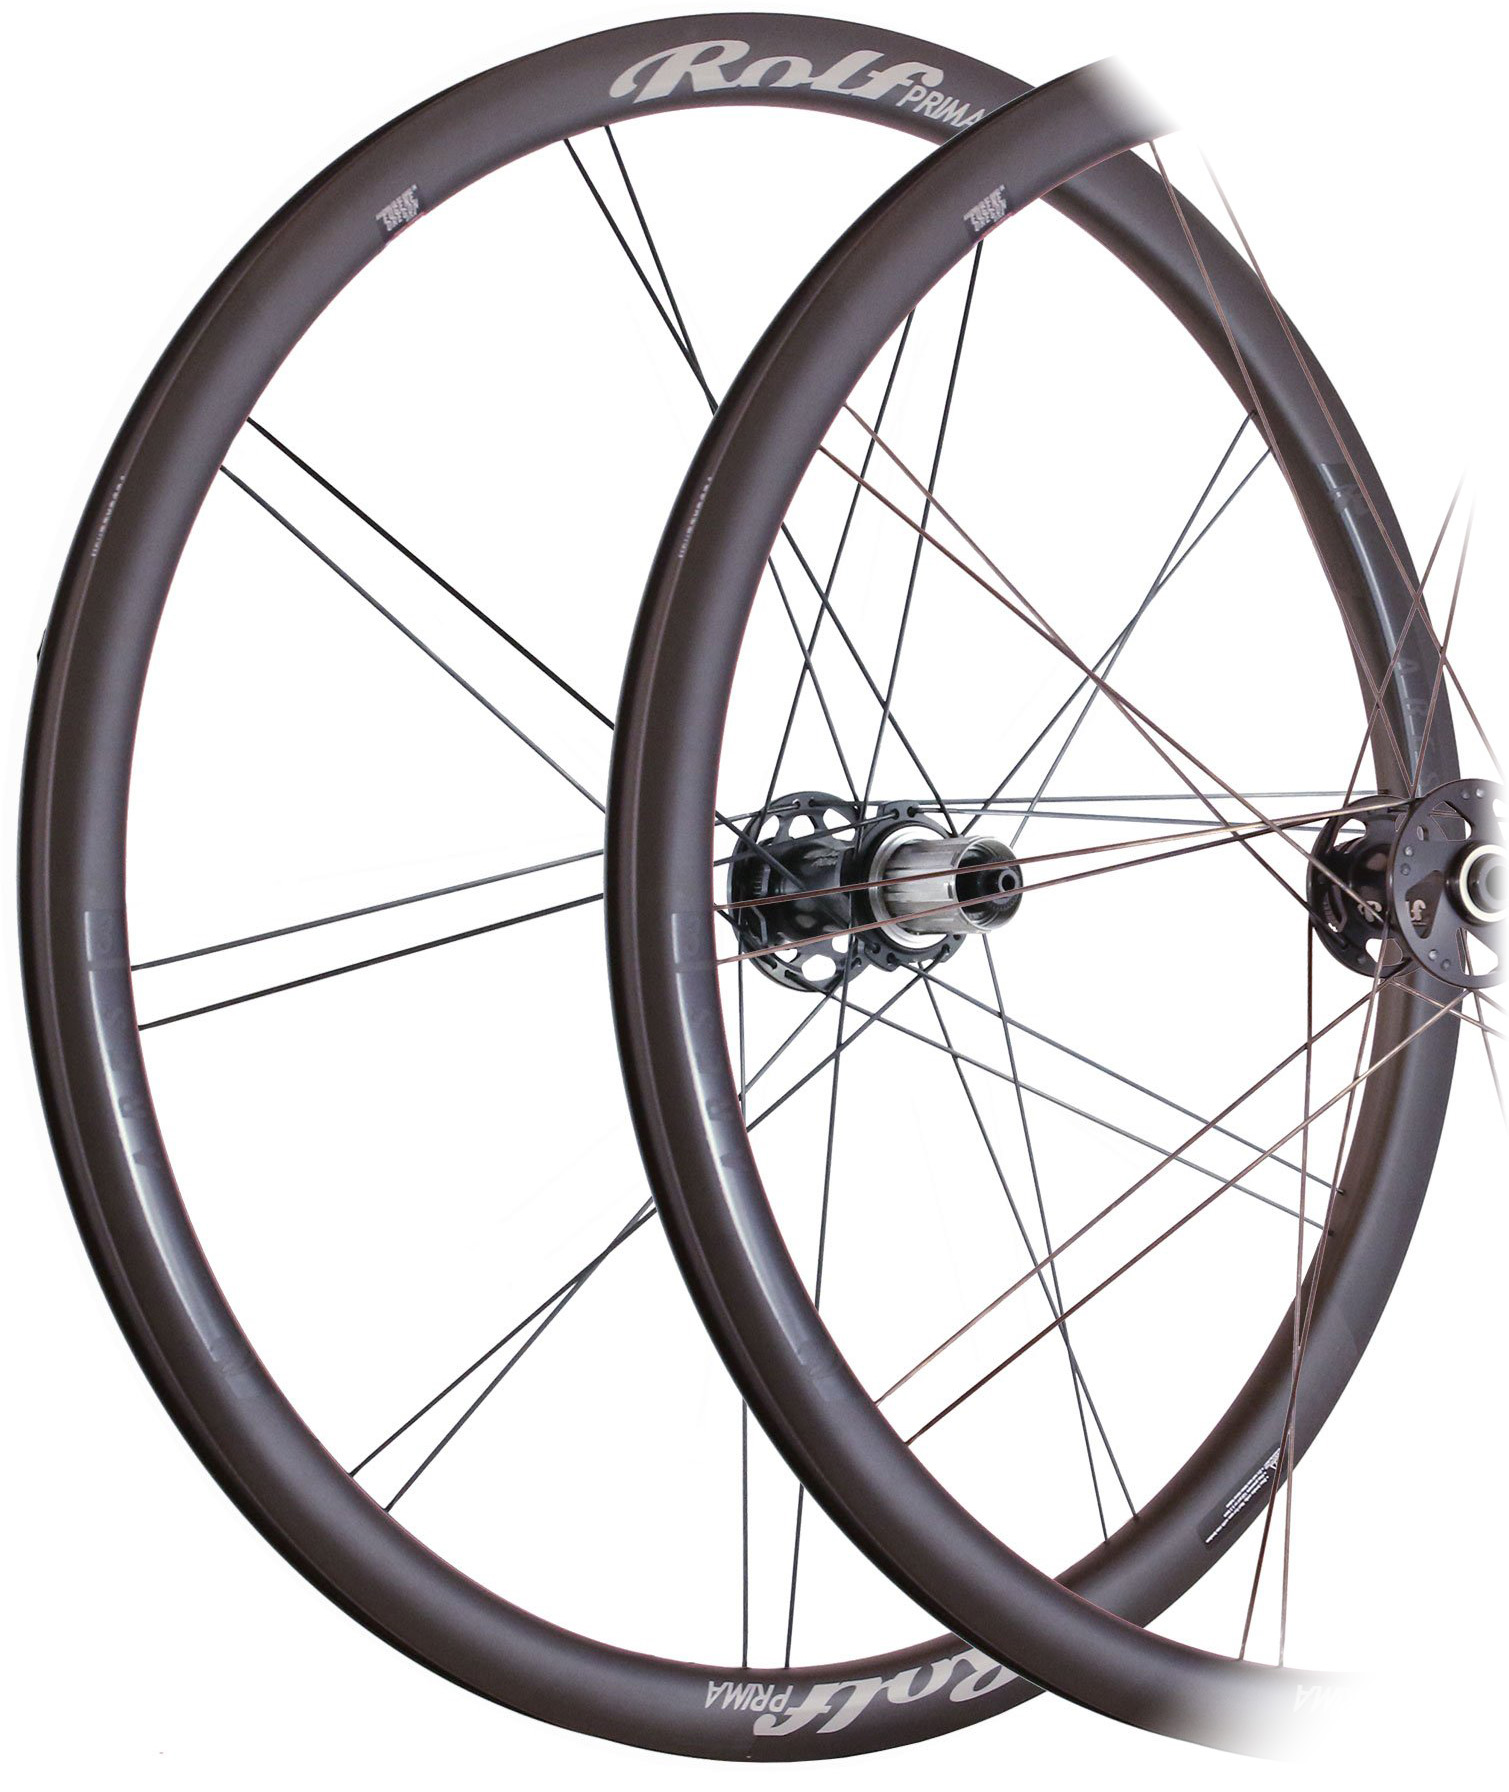 Rolf Prima Ares 3 Carbon DB 700c Rear Road Wheel | Wheelset